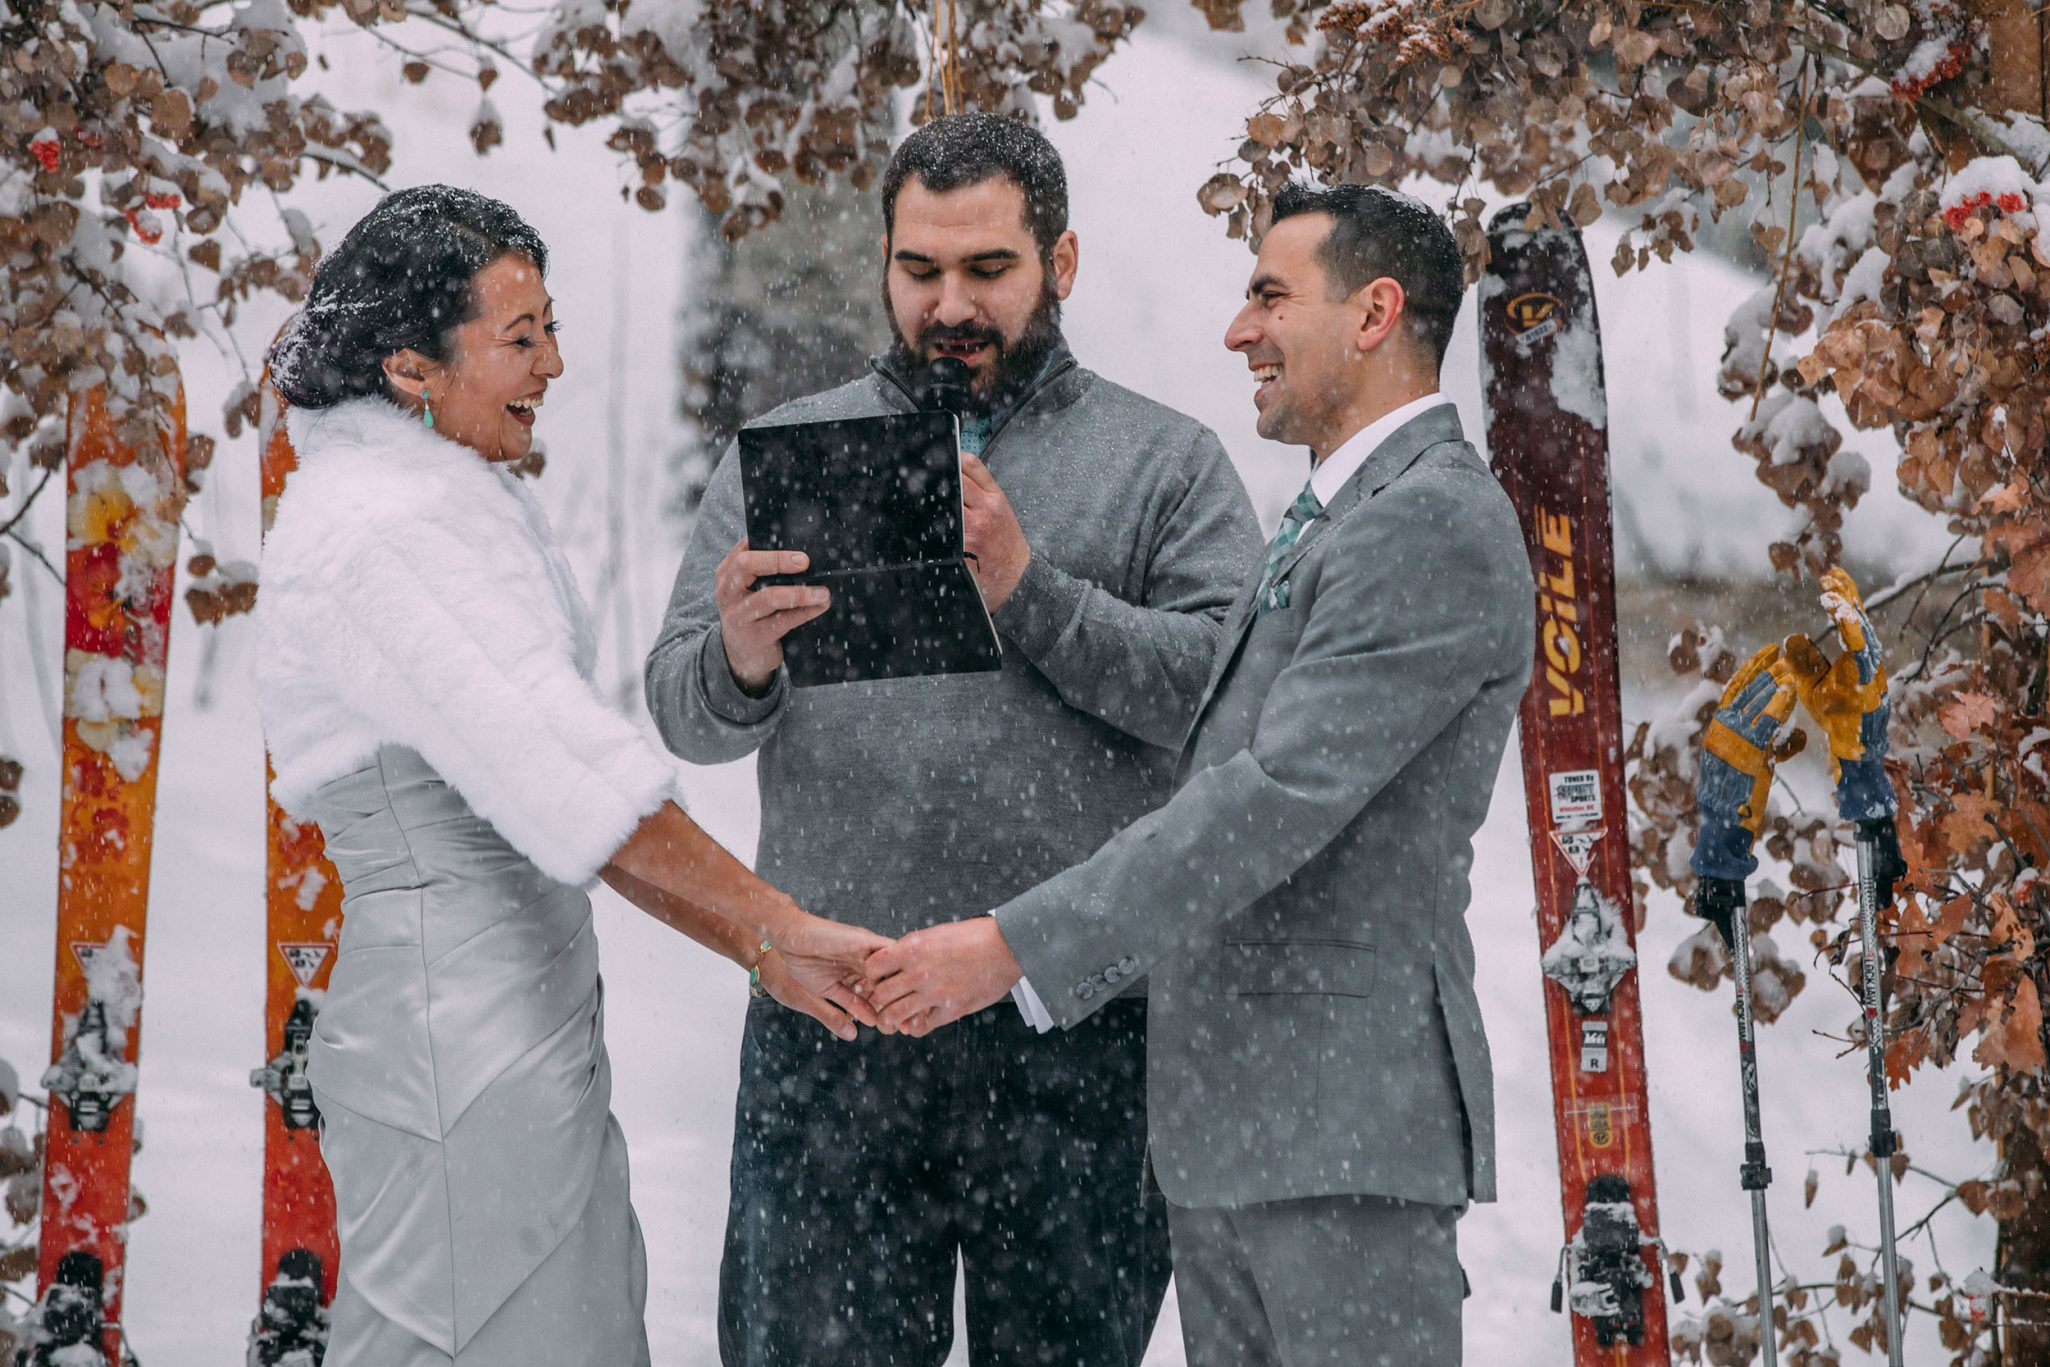 Ceremony | A Winter Wedding in the Snow at Silverpick Lodge, Durango Colorado